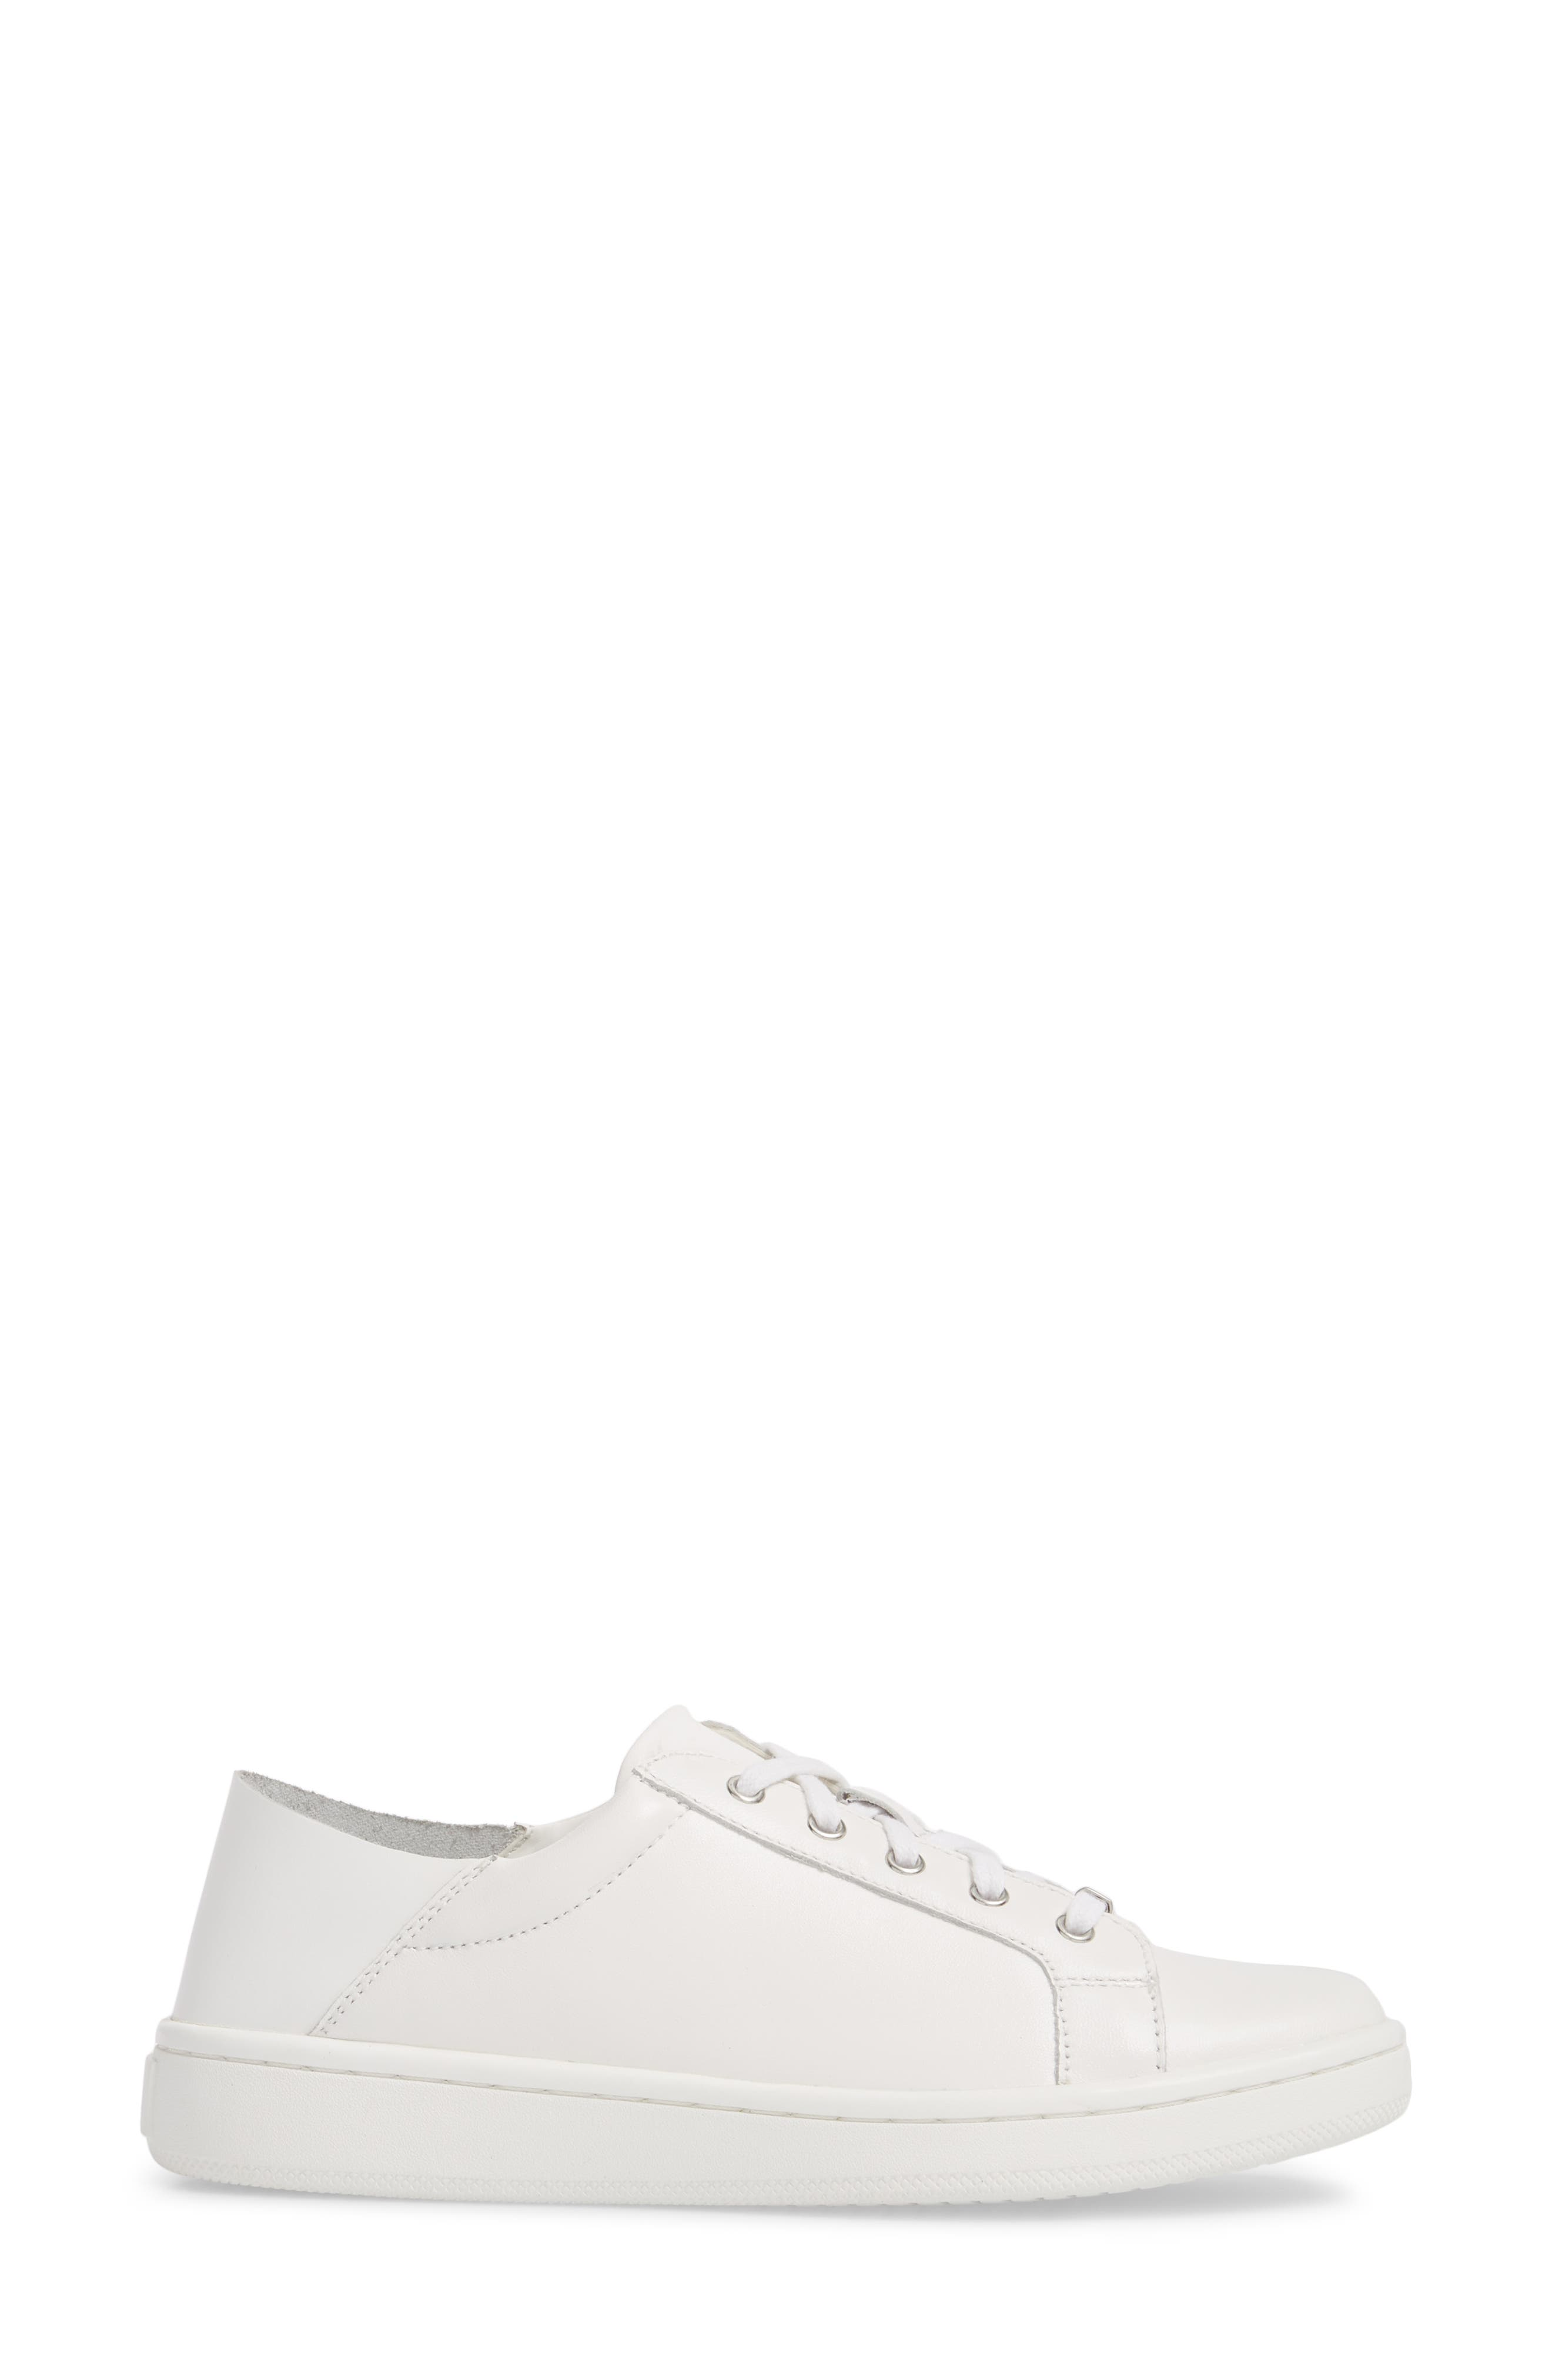 Danica Convertible Sneaker,                             Alternate thumbnail 4, color,                             White/ White Leather